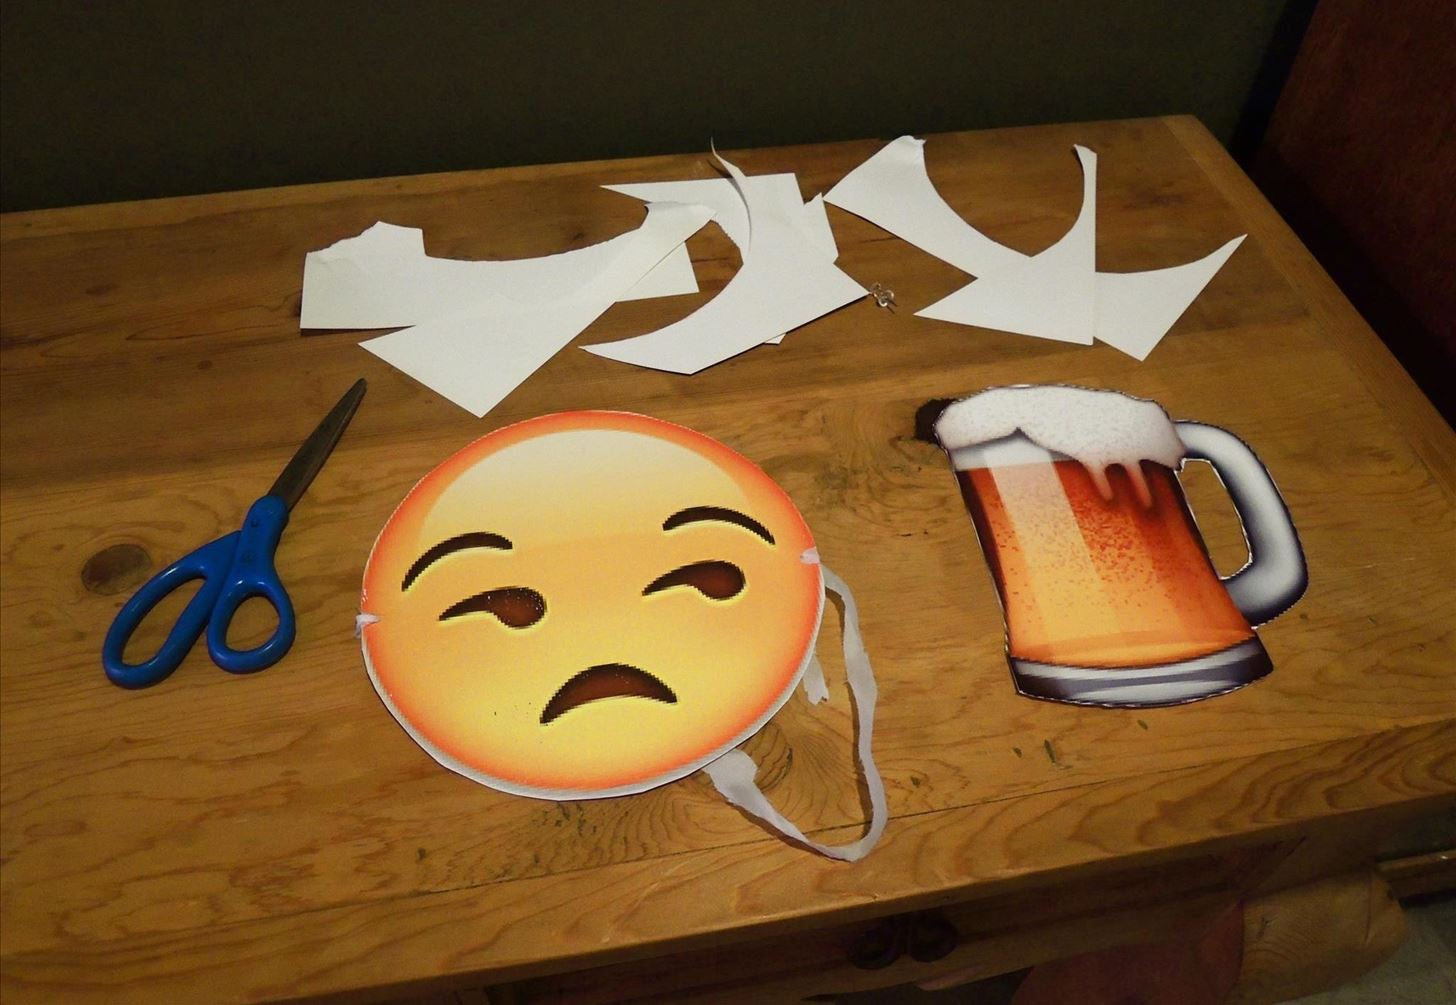 Print Out These Emoji Cutouts for the Easiest Halloween Costume Ever